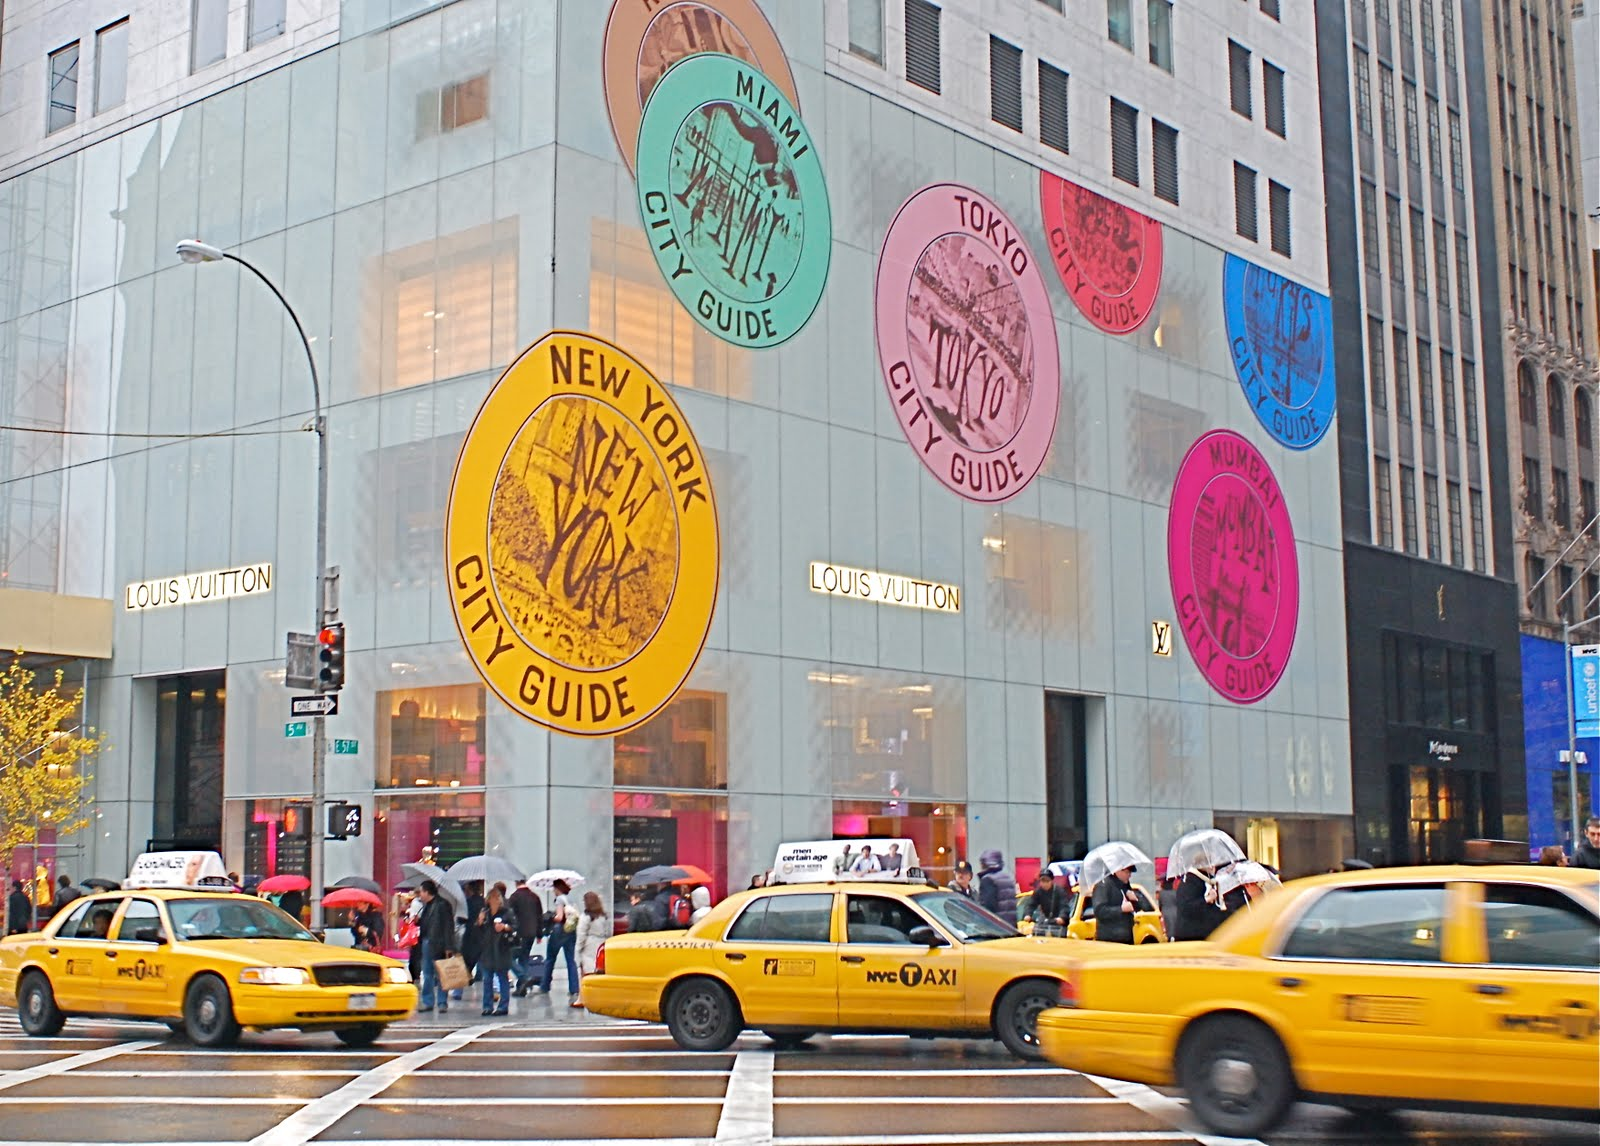 c260a38eeab NYC ♥ NYC  Louis Vuitton Flagship Store on Fifth Avenue - November ...